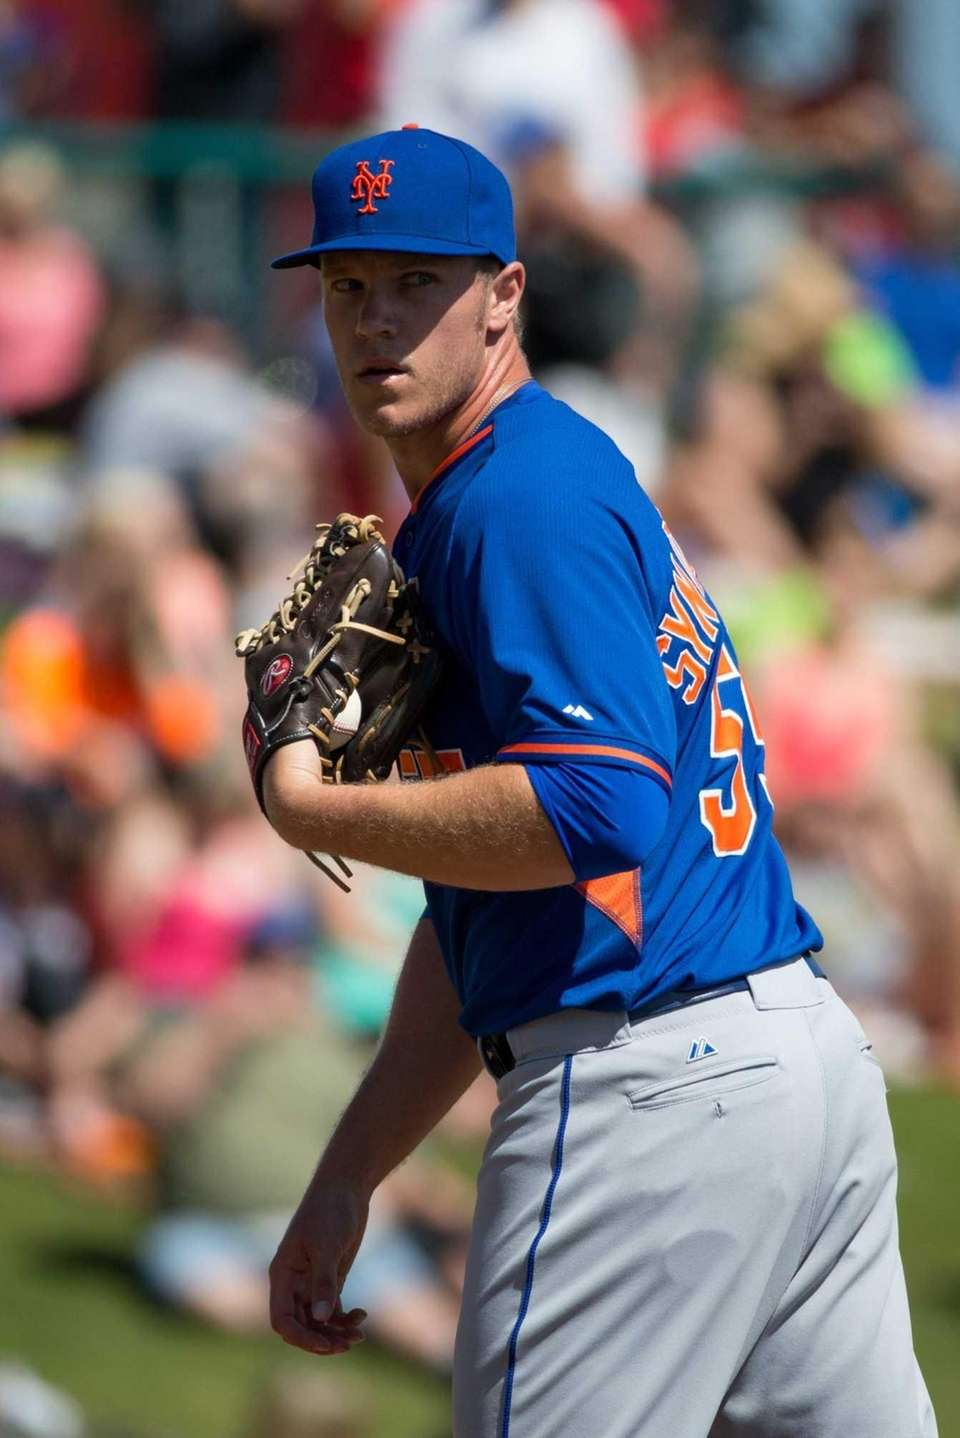 Noah Syndergaard #55 of the Mets looks toward